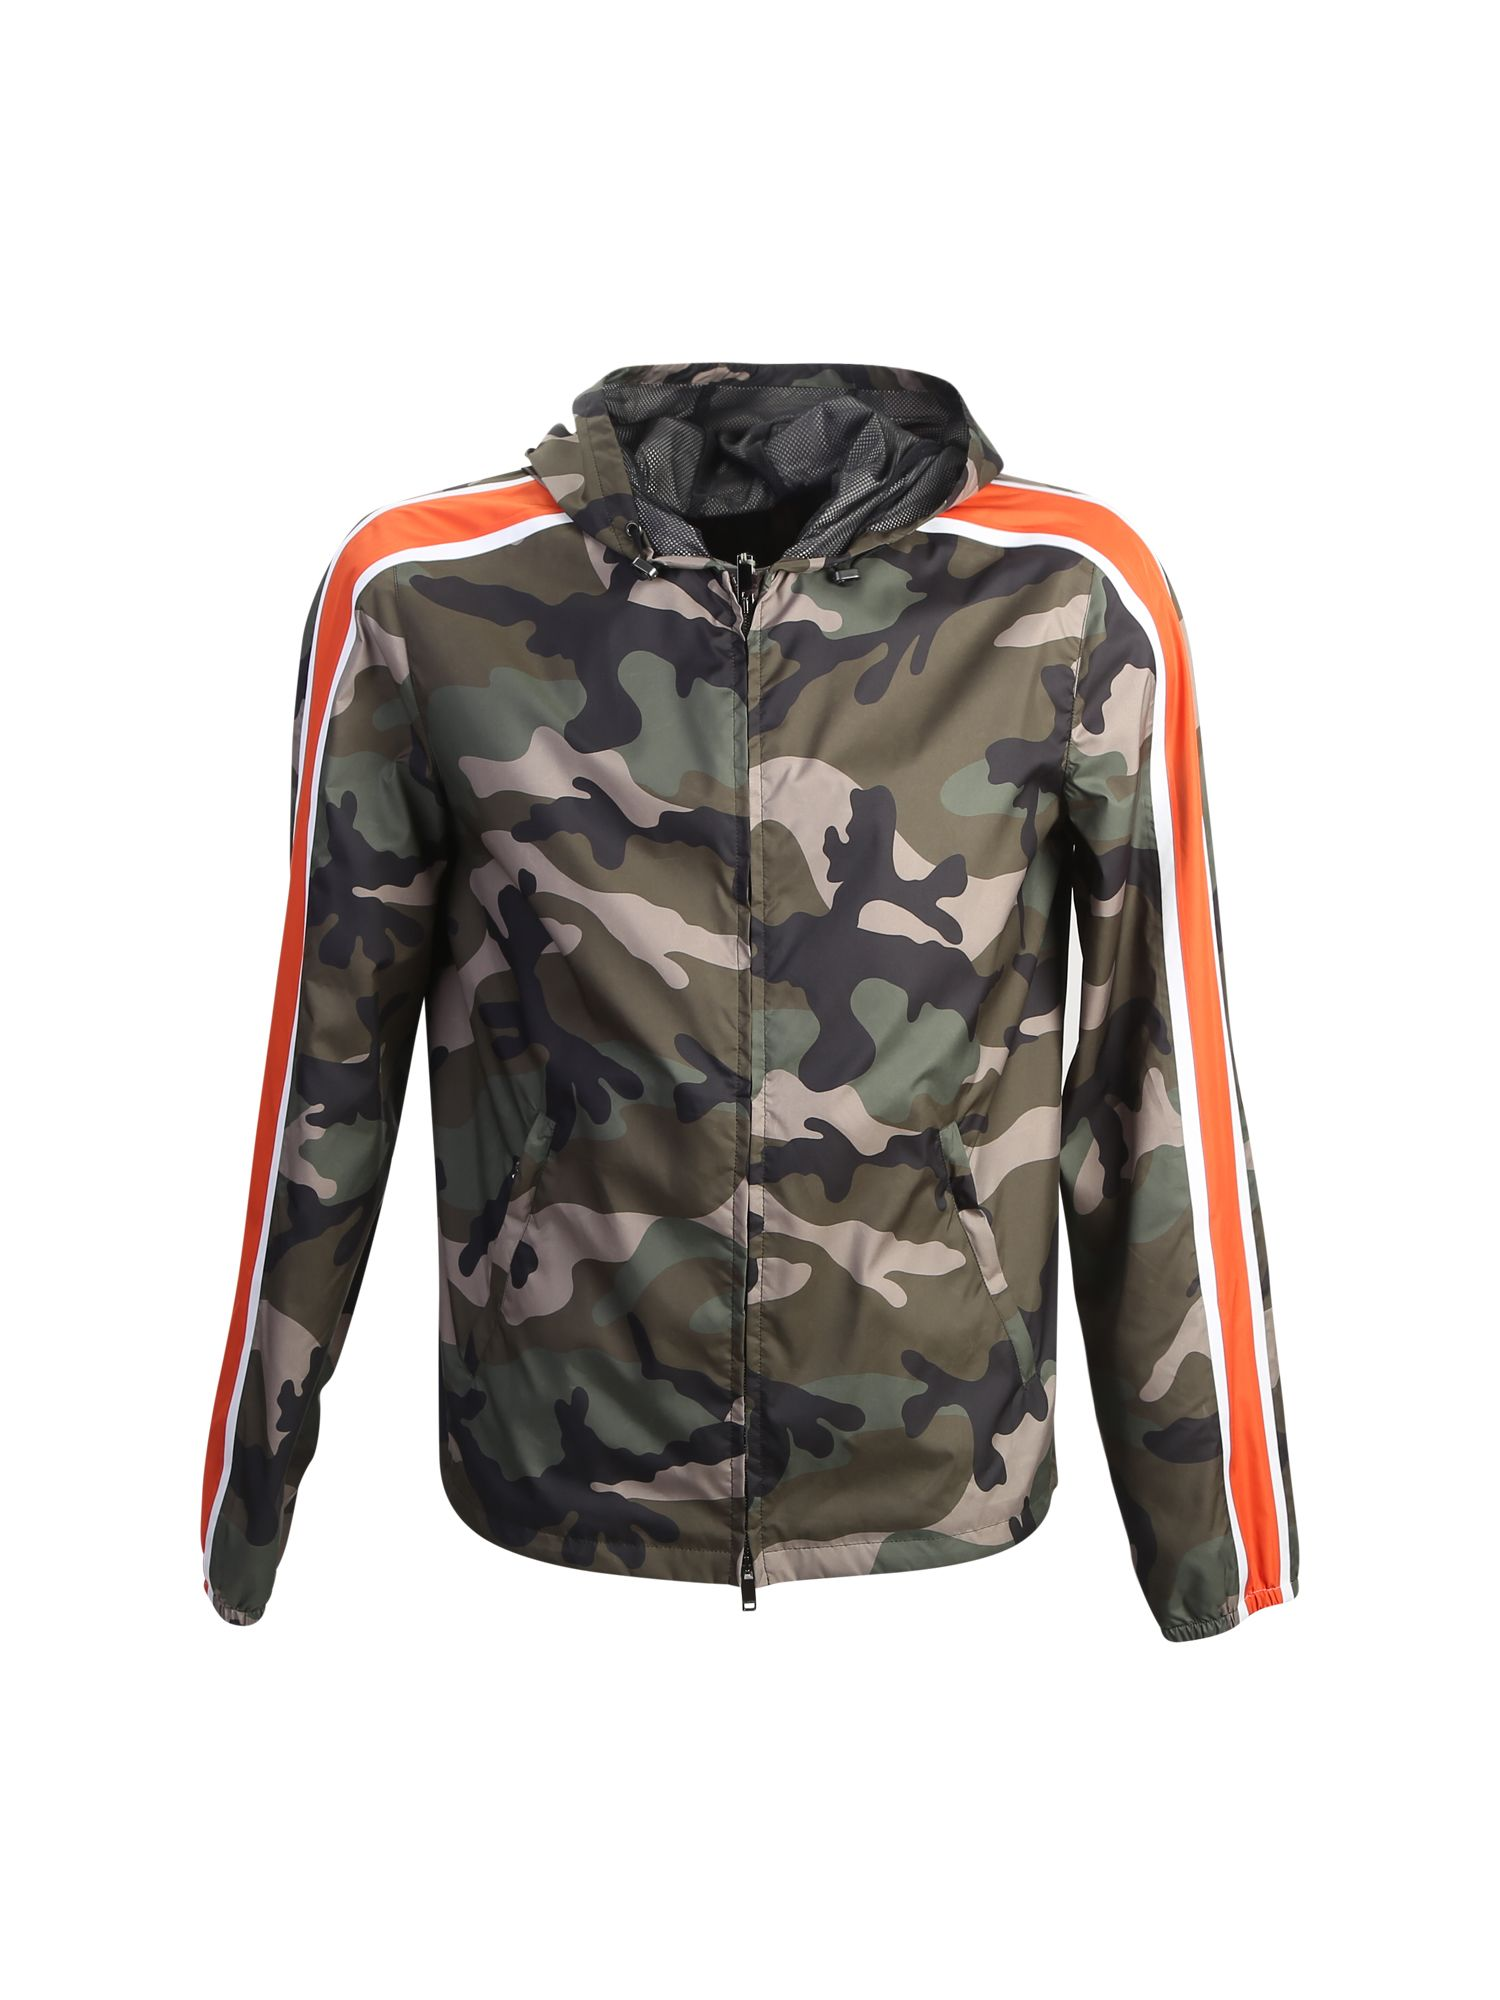 Nylon K-way Jacket